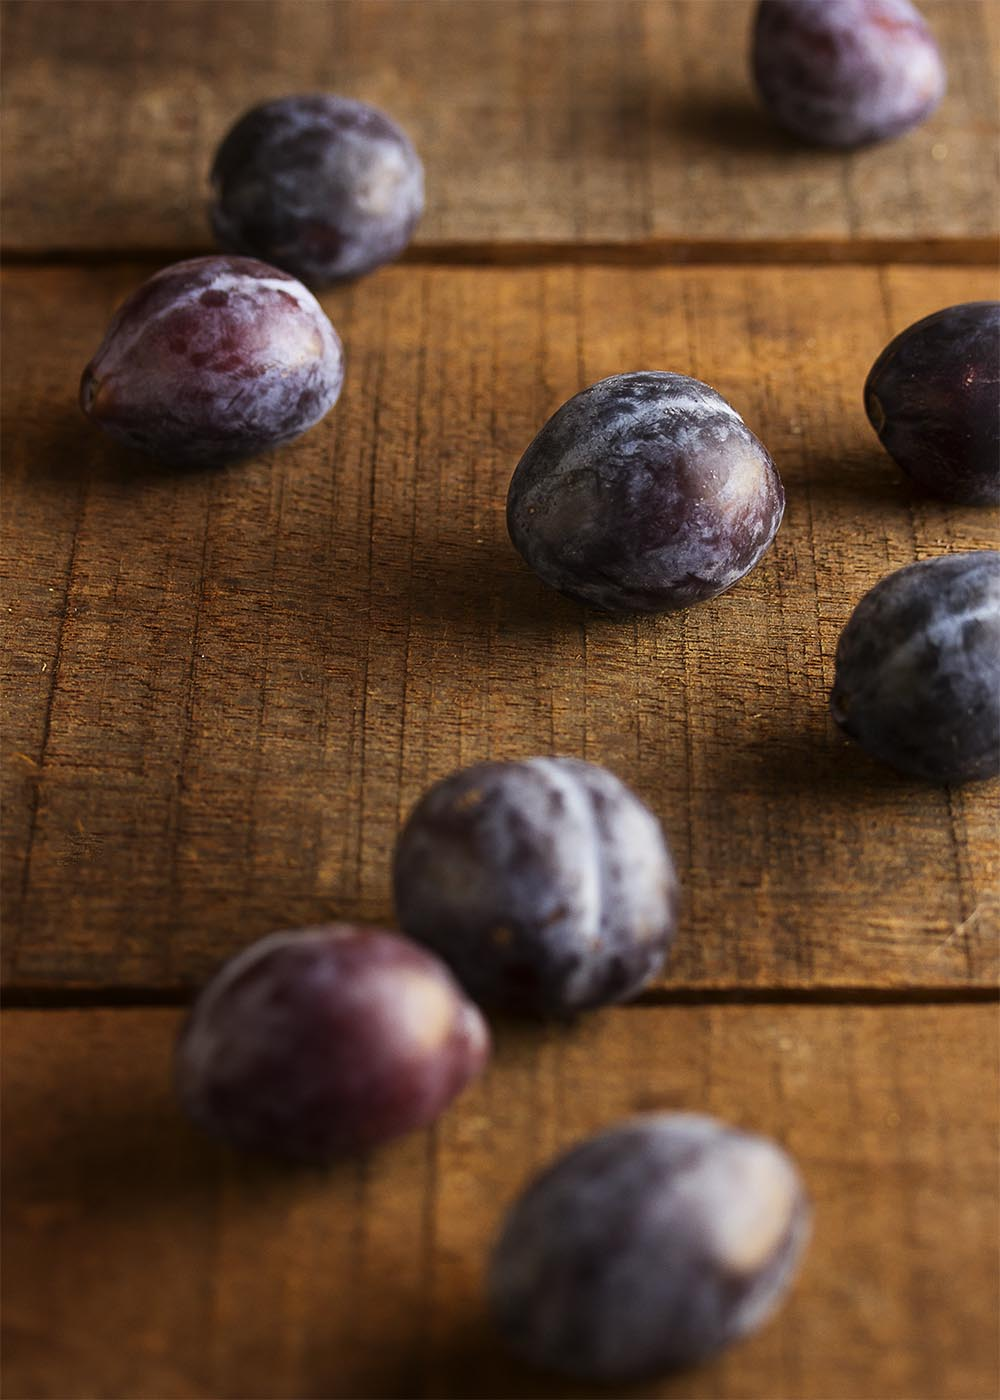 Pull out your muffin tin for easy clean up and wrap plum slices and spiced honey in puff pastry to make these puff pastry plum tarts. Bake until they are puffed and golden, then drizzle with a little more spiced honey, and serve with mascarpone whipped cream.   justalittlebitofbacon.com